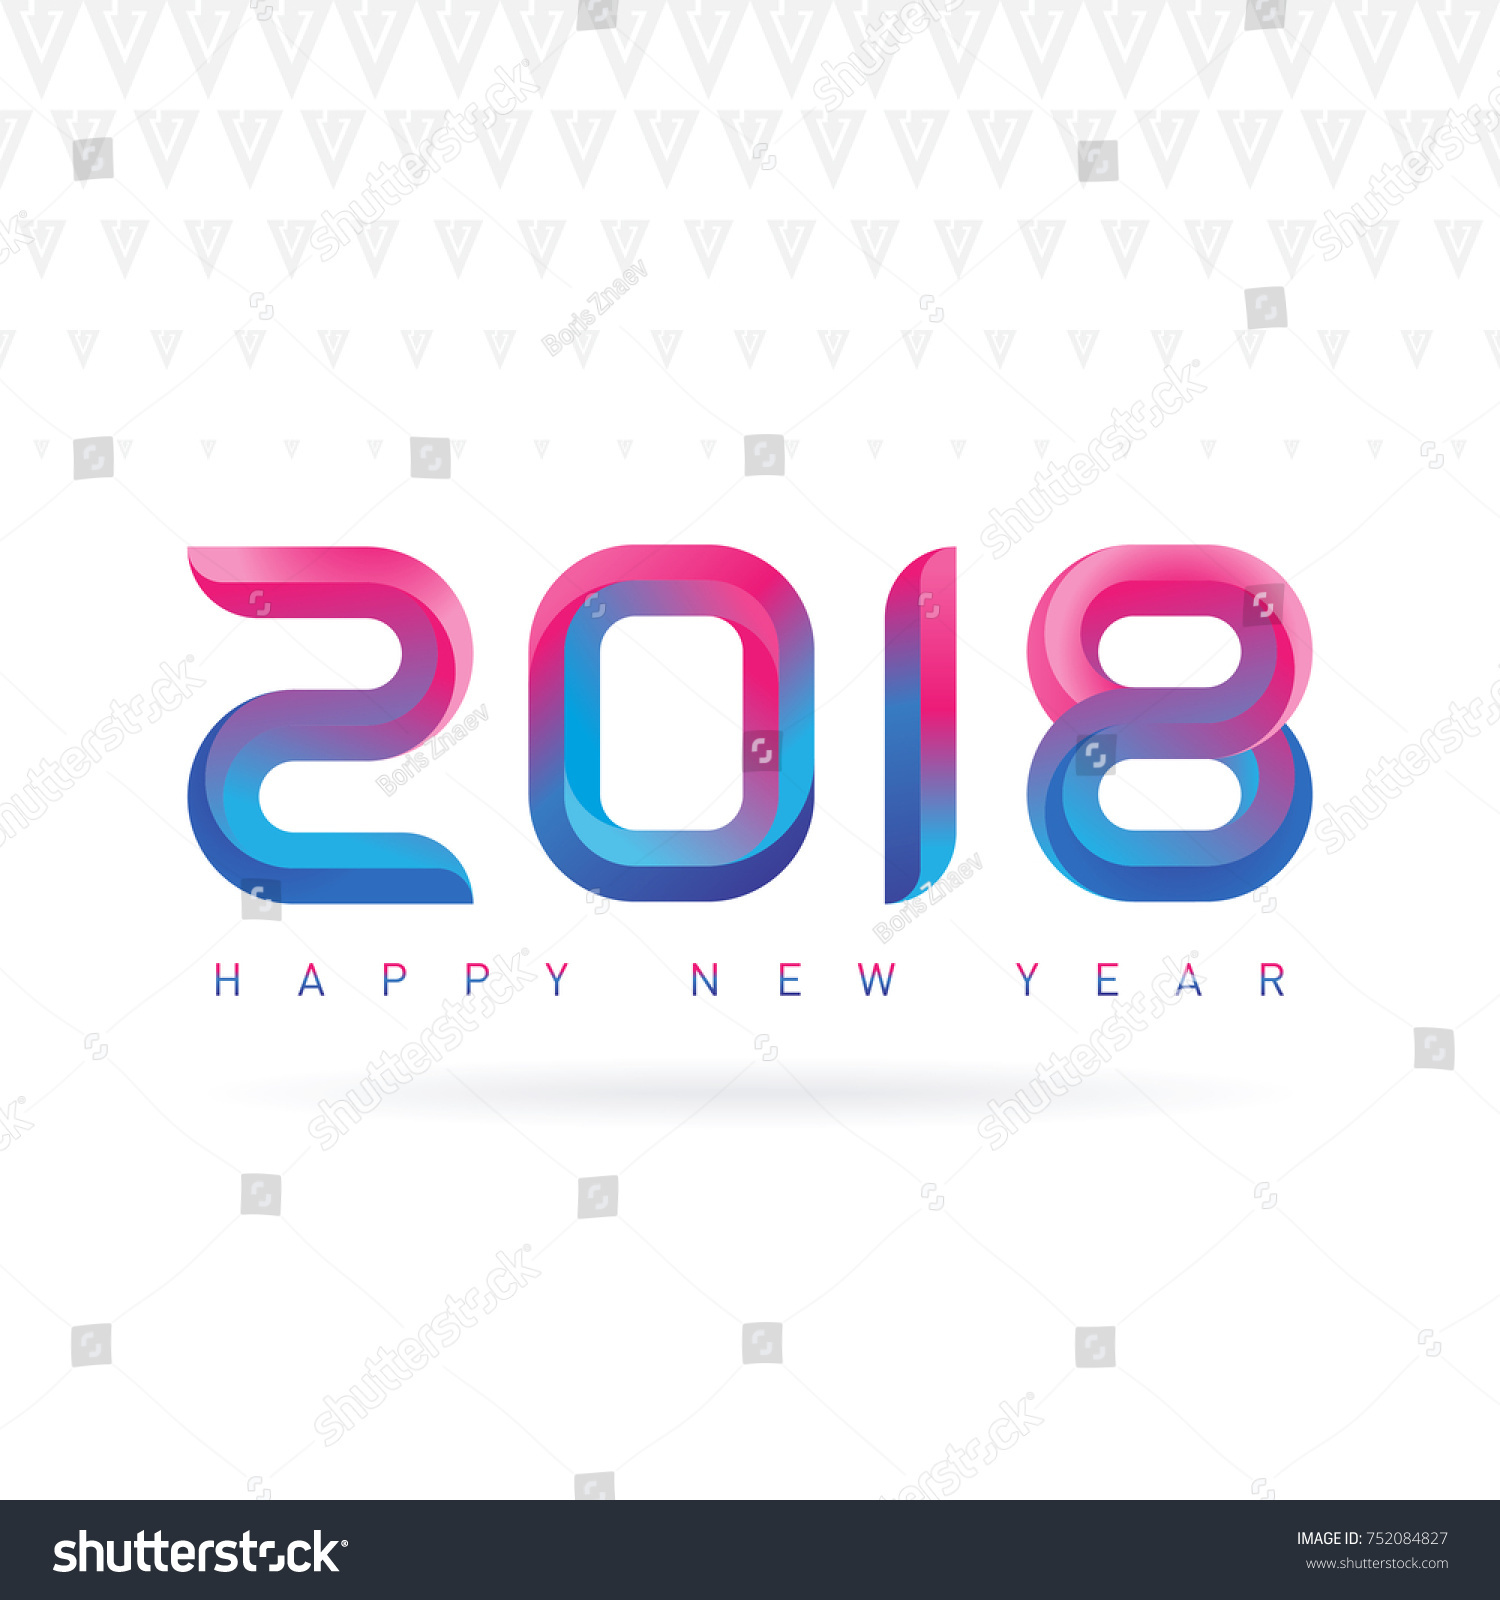 Happy New Year Greeting Card Modern Stock Vector (Royalty Free ...